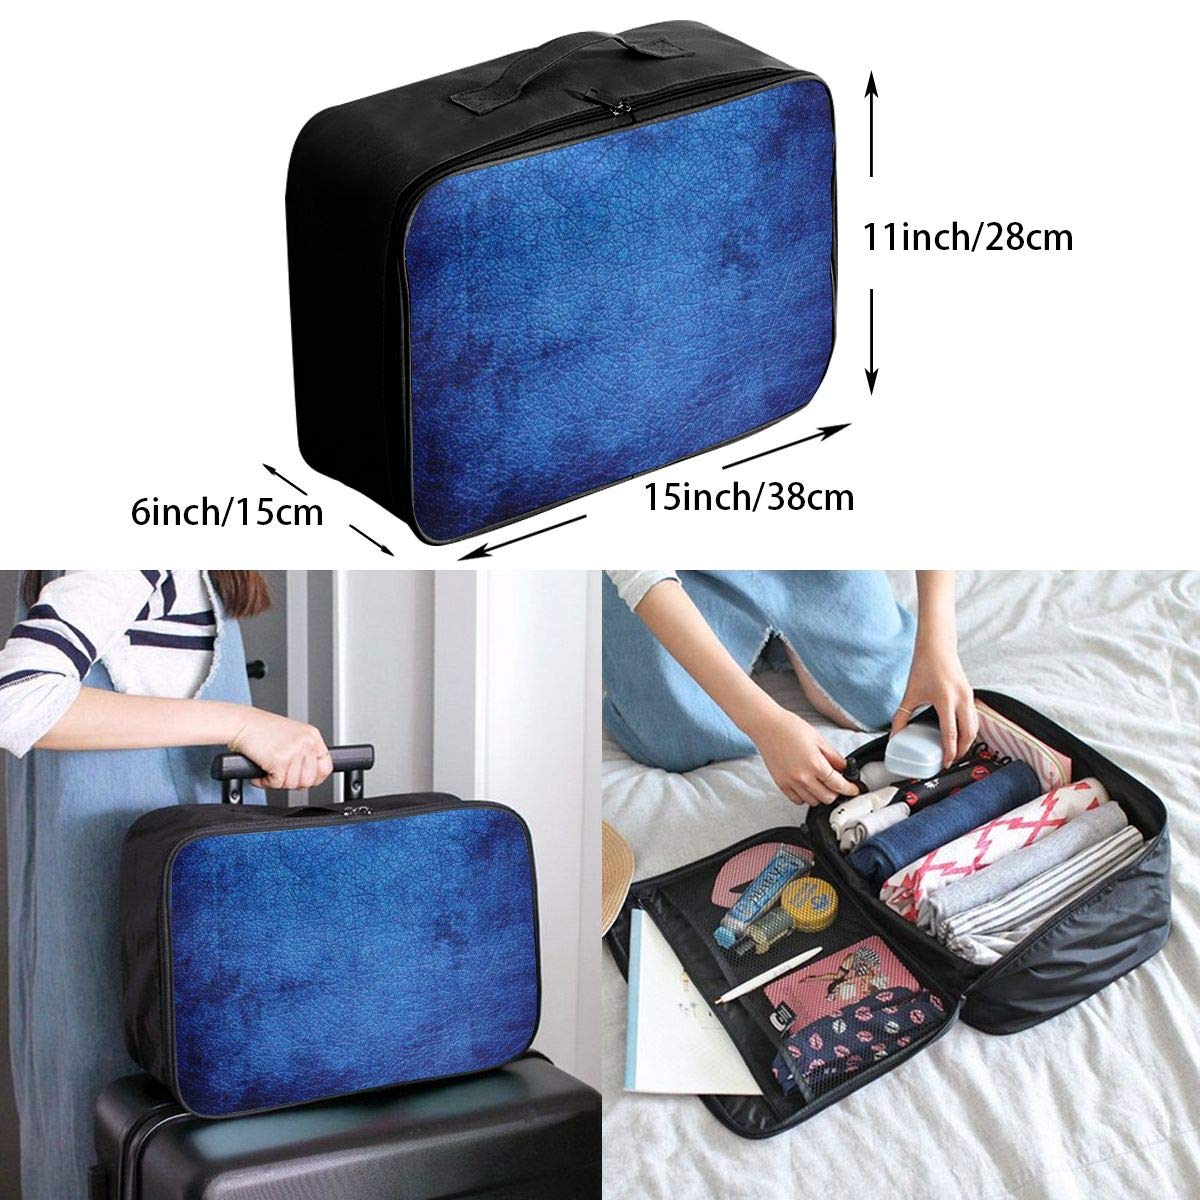 Pure Abstract Navy Blue Simple Texture Travel Lightweight Waterproof Folding Storage Portable Luggage Duffle Tote Bag Large Capacity In Trolley Handle Bags 6x11x15 Inch